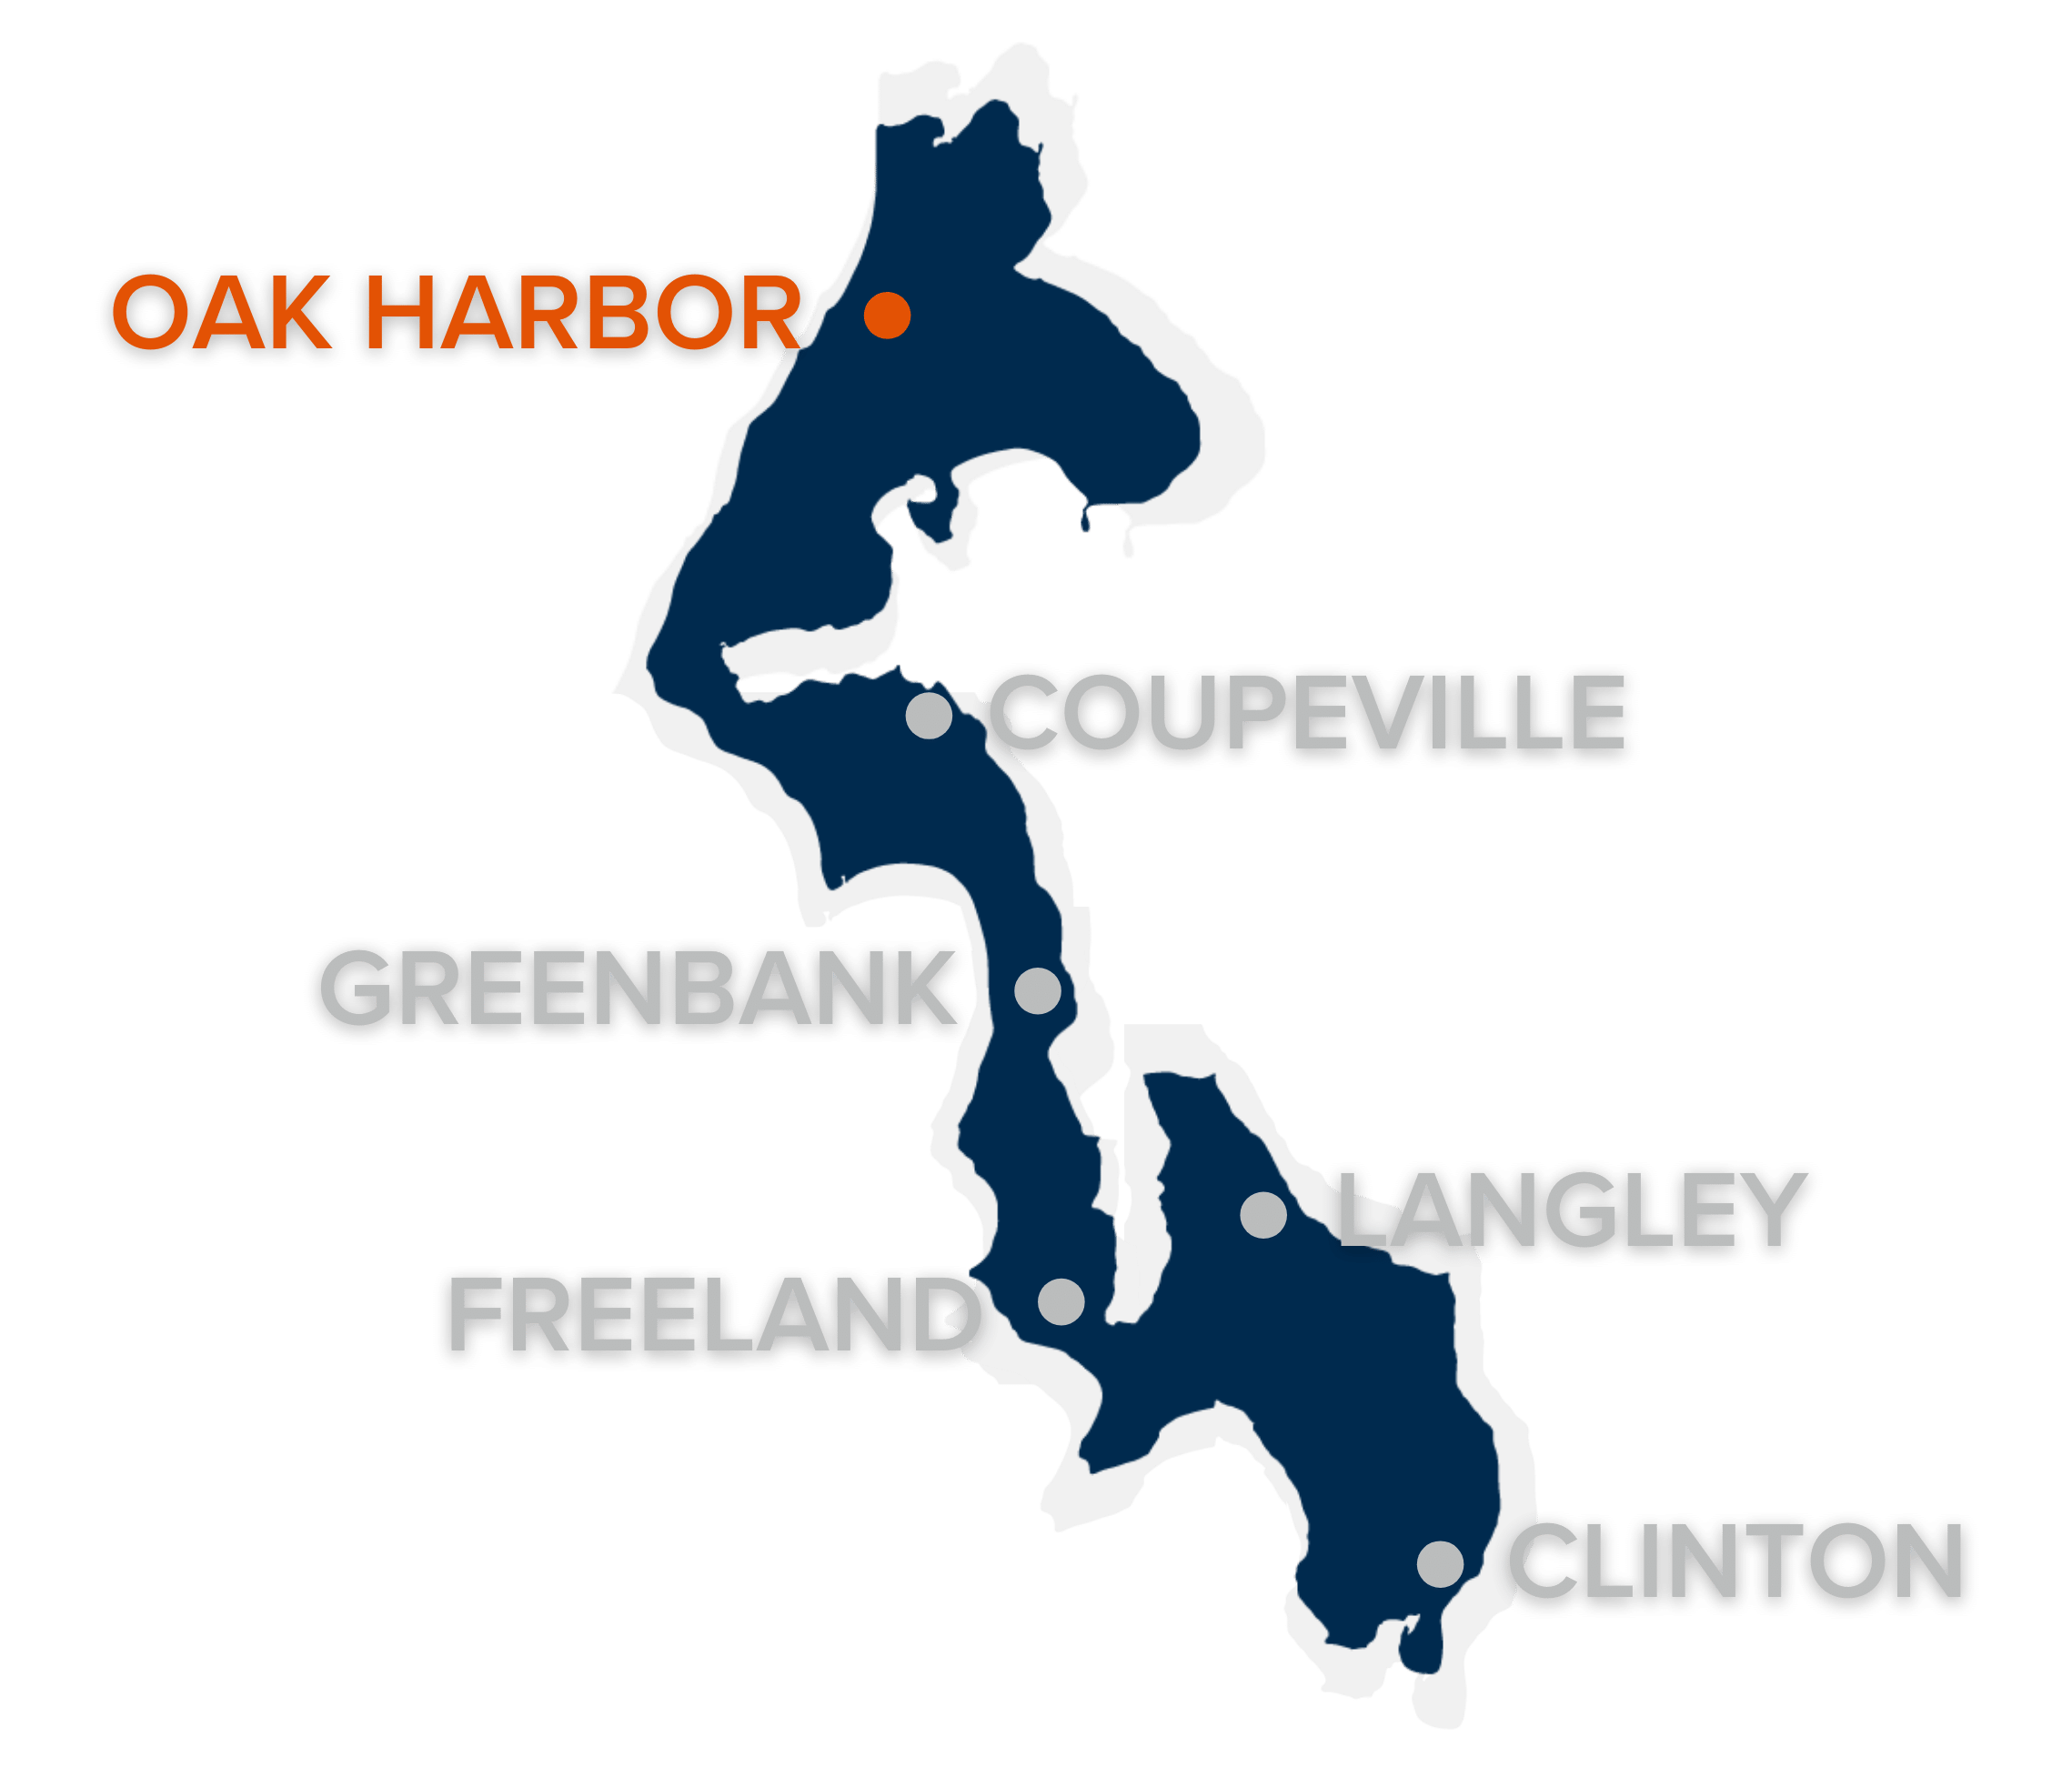 Oak Harbor, Whidbey Island, Washington